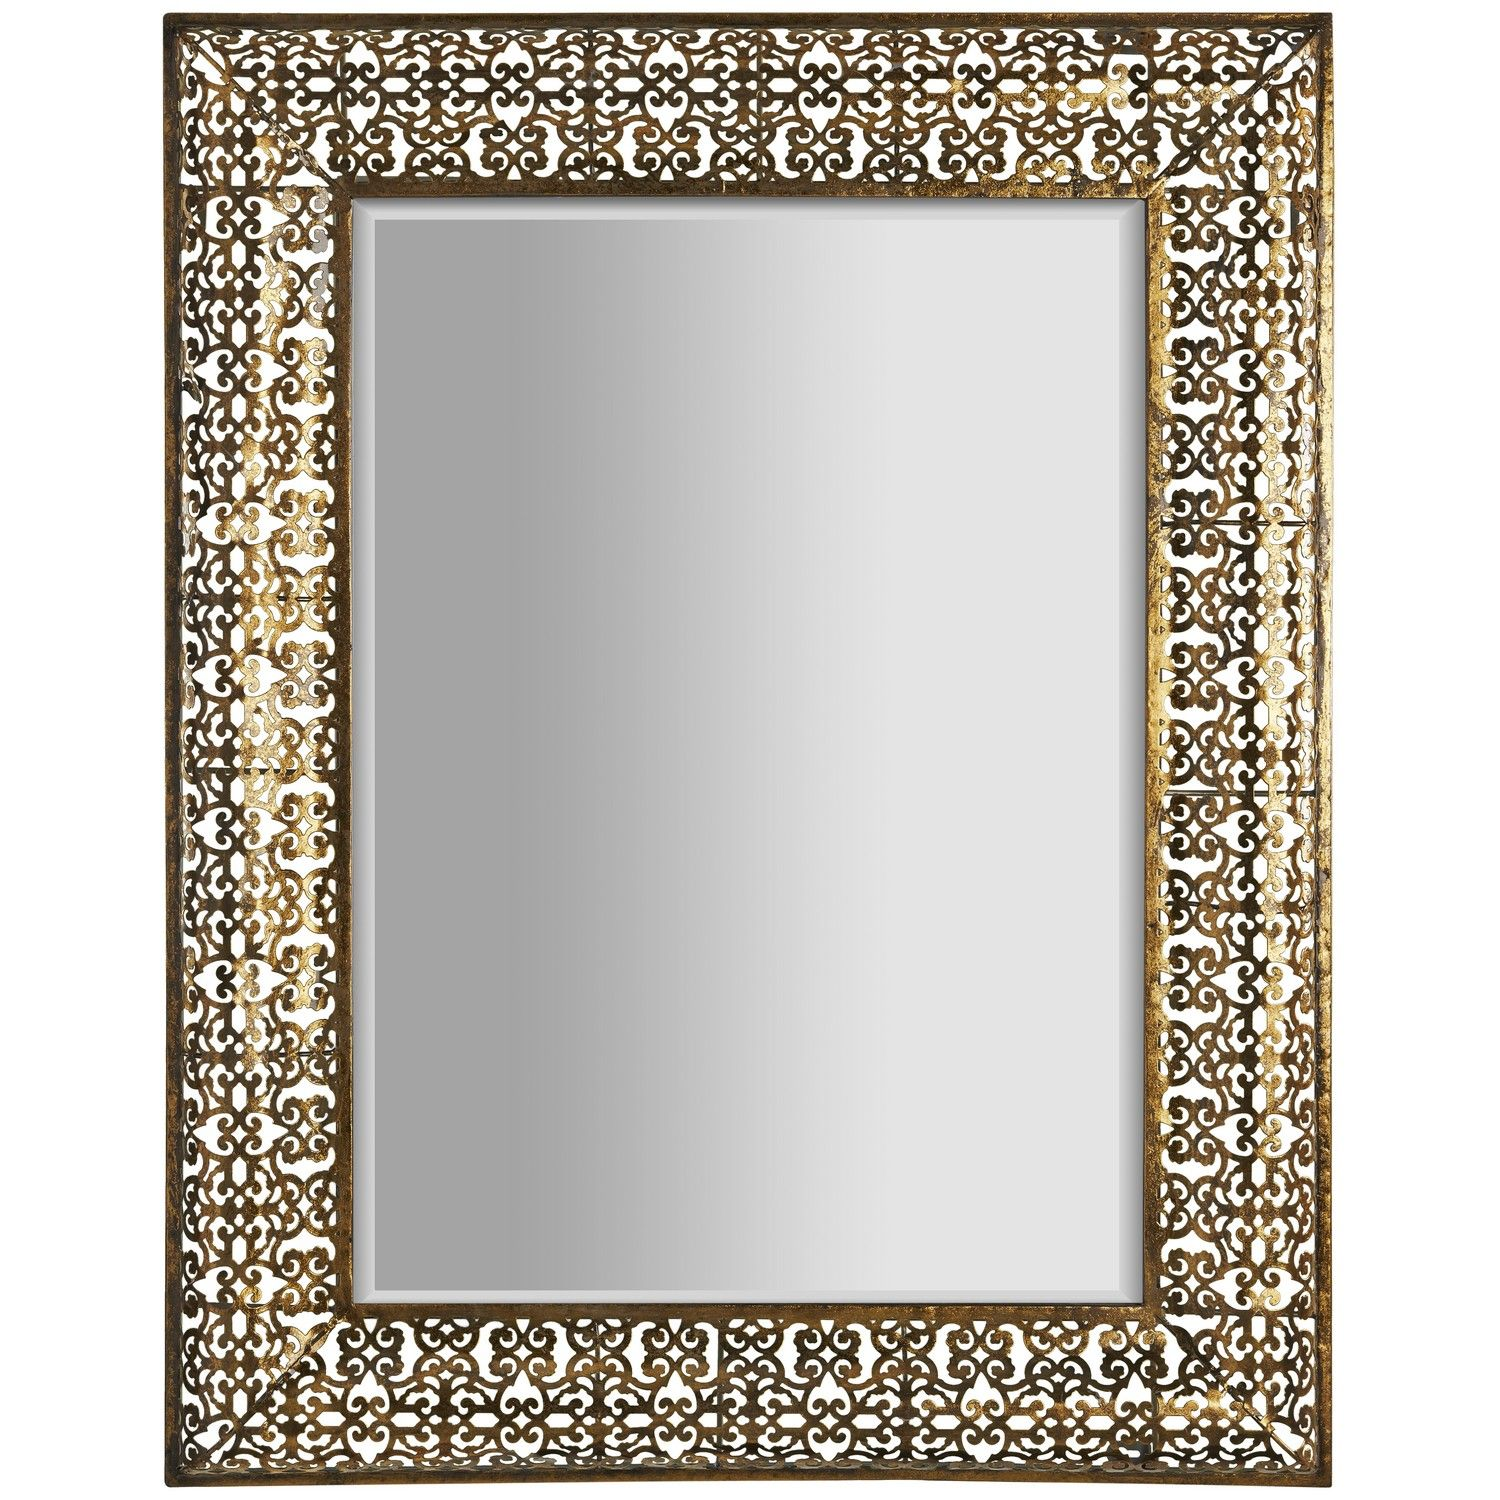 Buy Gold Marrakech Mirror Mirrors The Range Home Bedroom